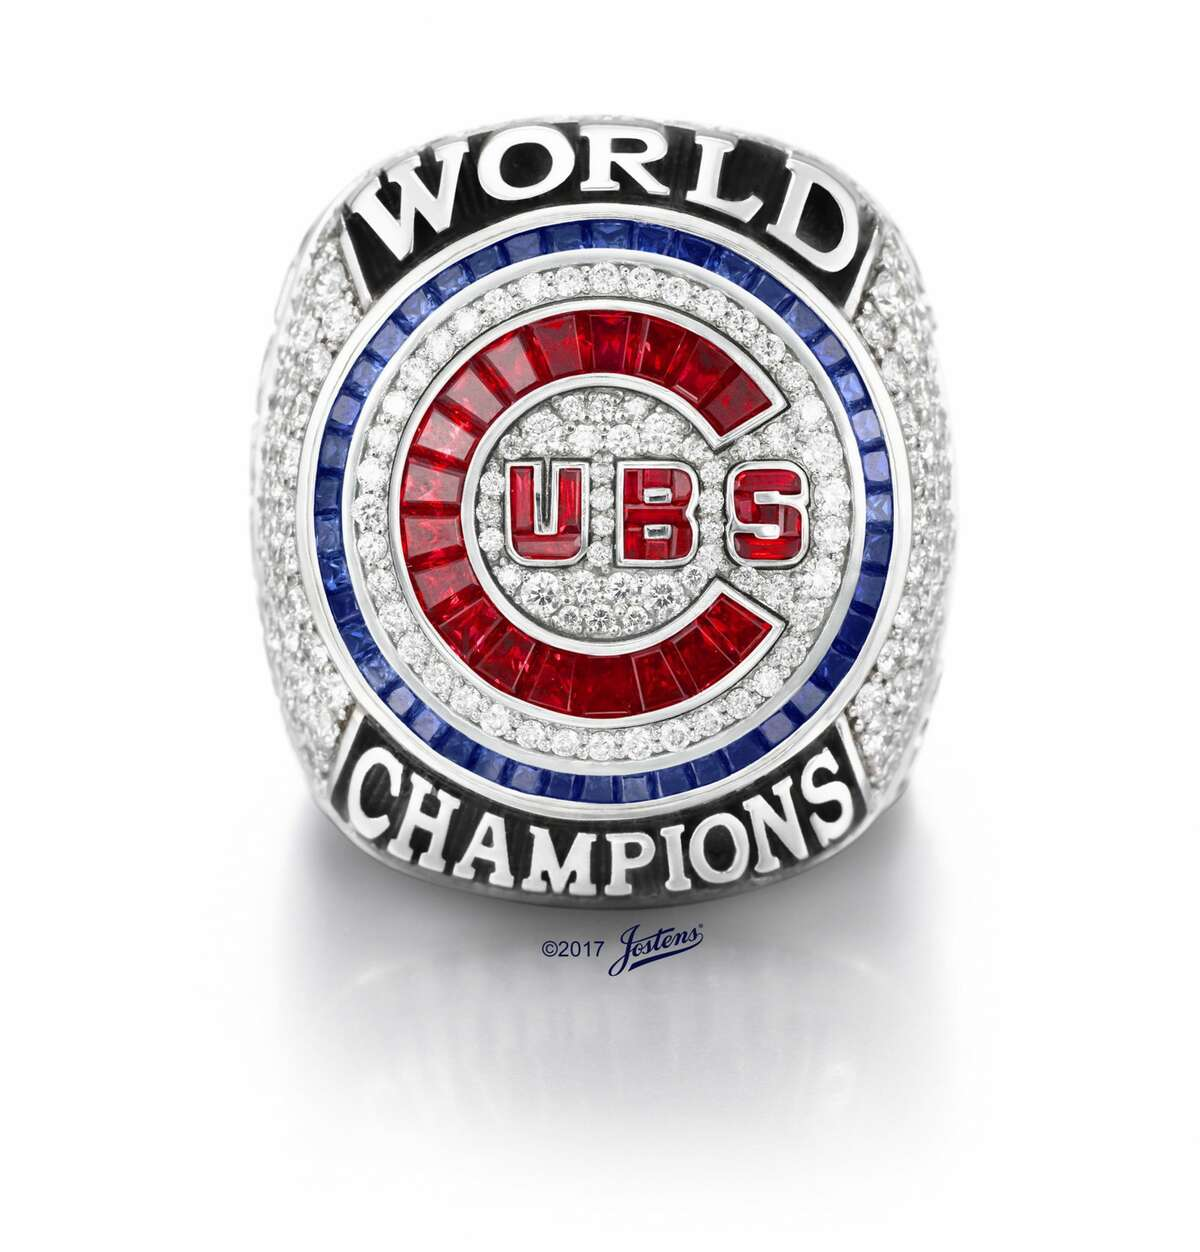 An authentic Chicago Cubs World Series ring has been removed from an online auction, and the scout who tried to sell it is no longer with the team. (PRNewsfoto/Jostens)